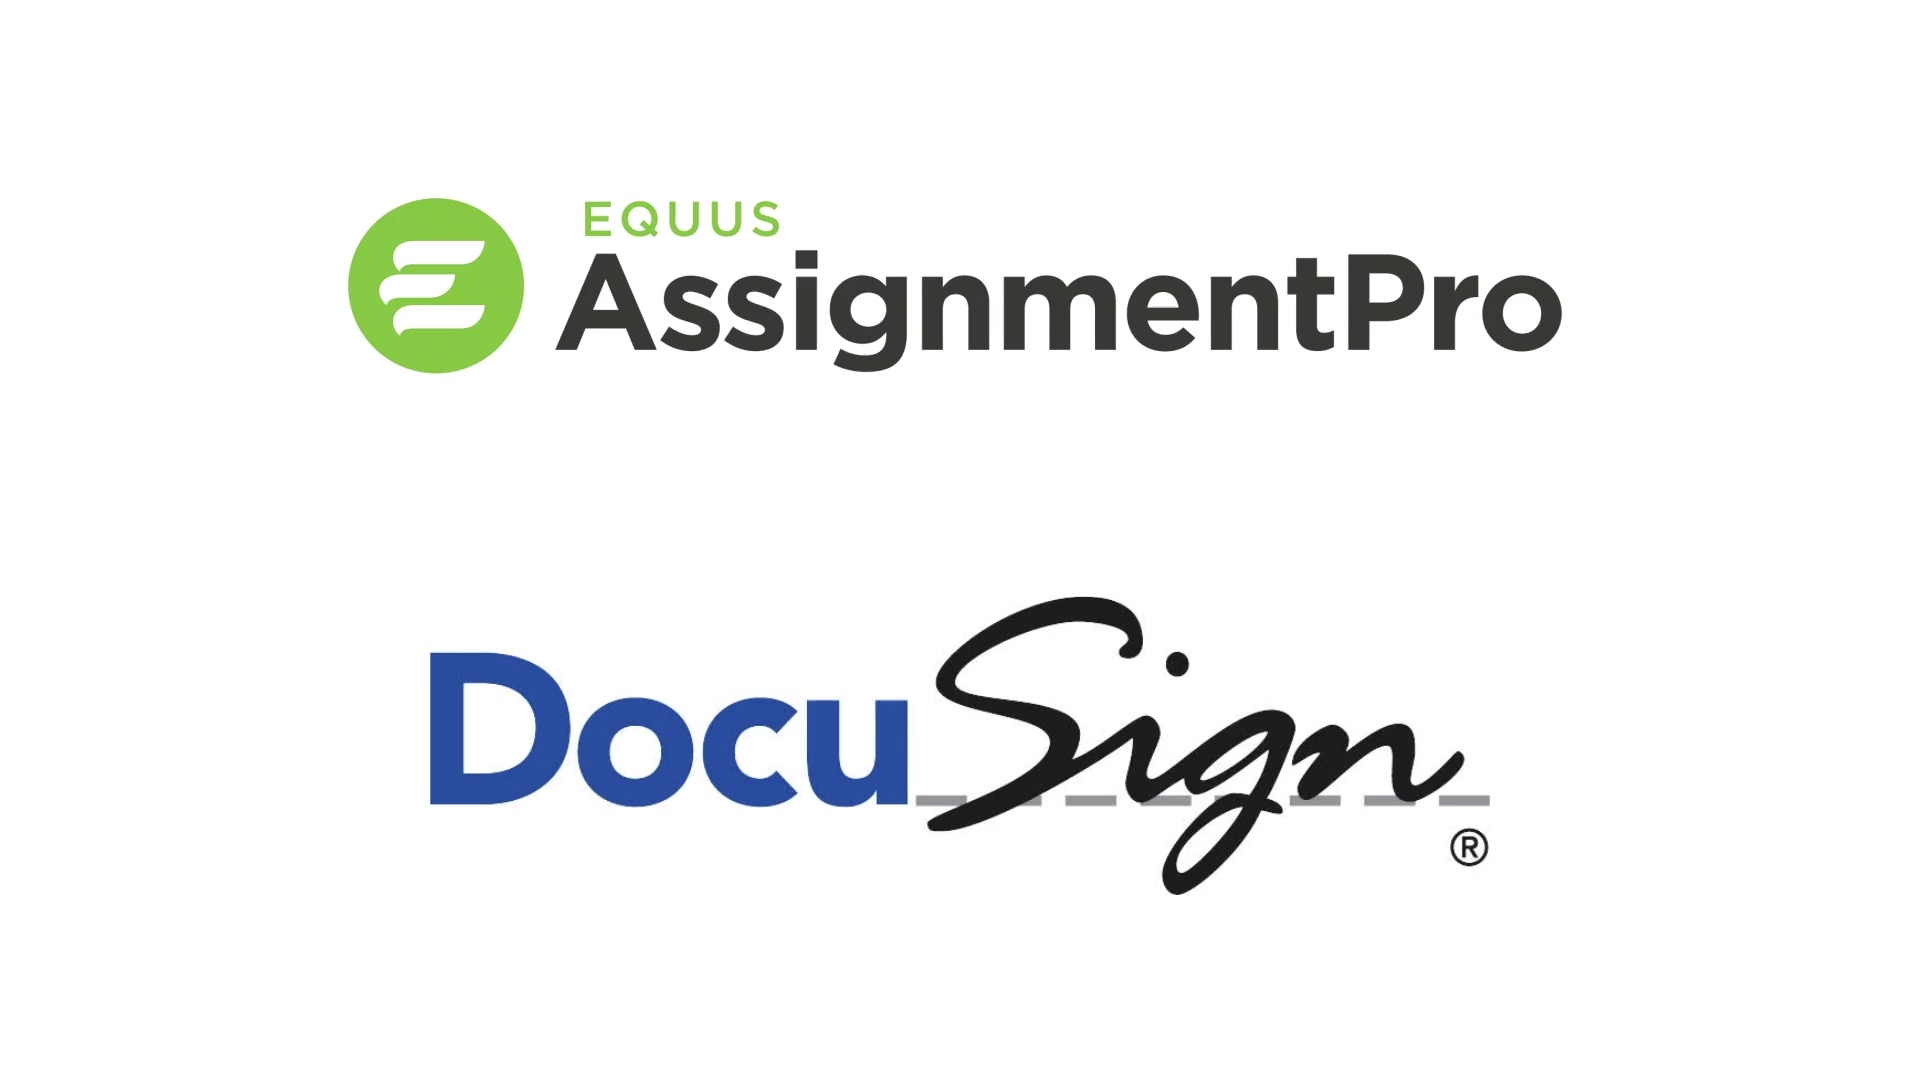 DocuSign - now integrated into AssignmentPro